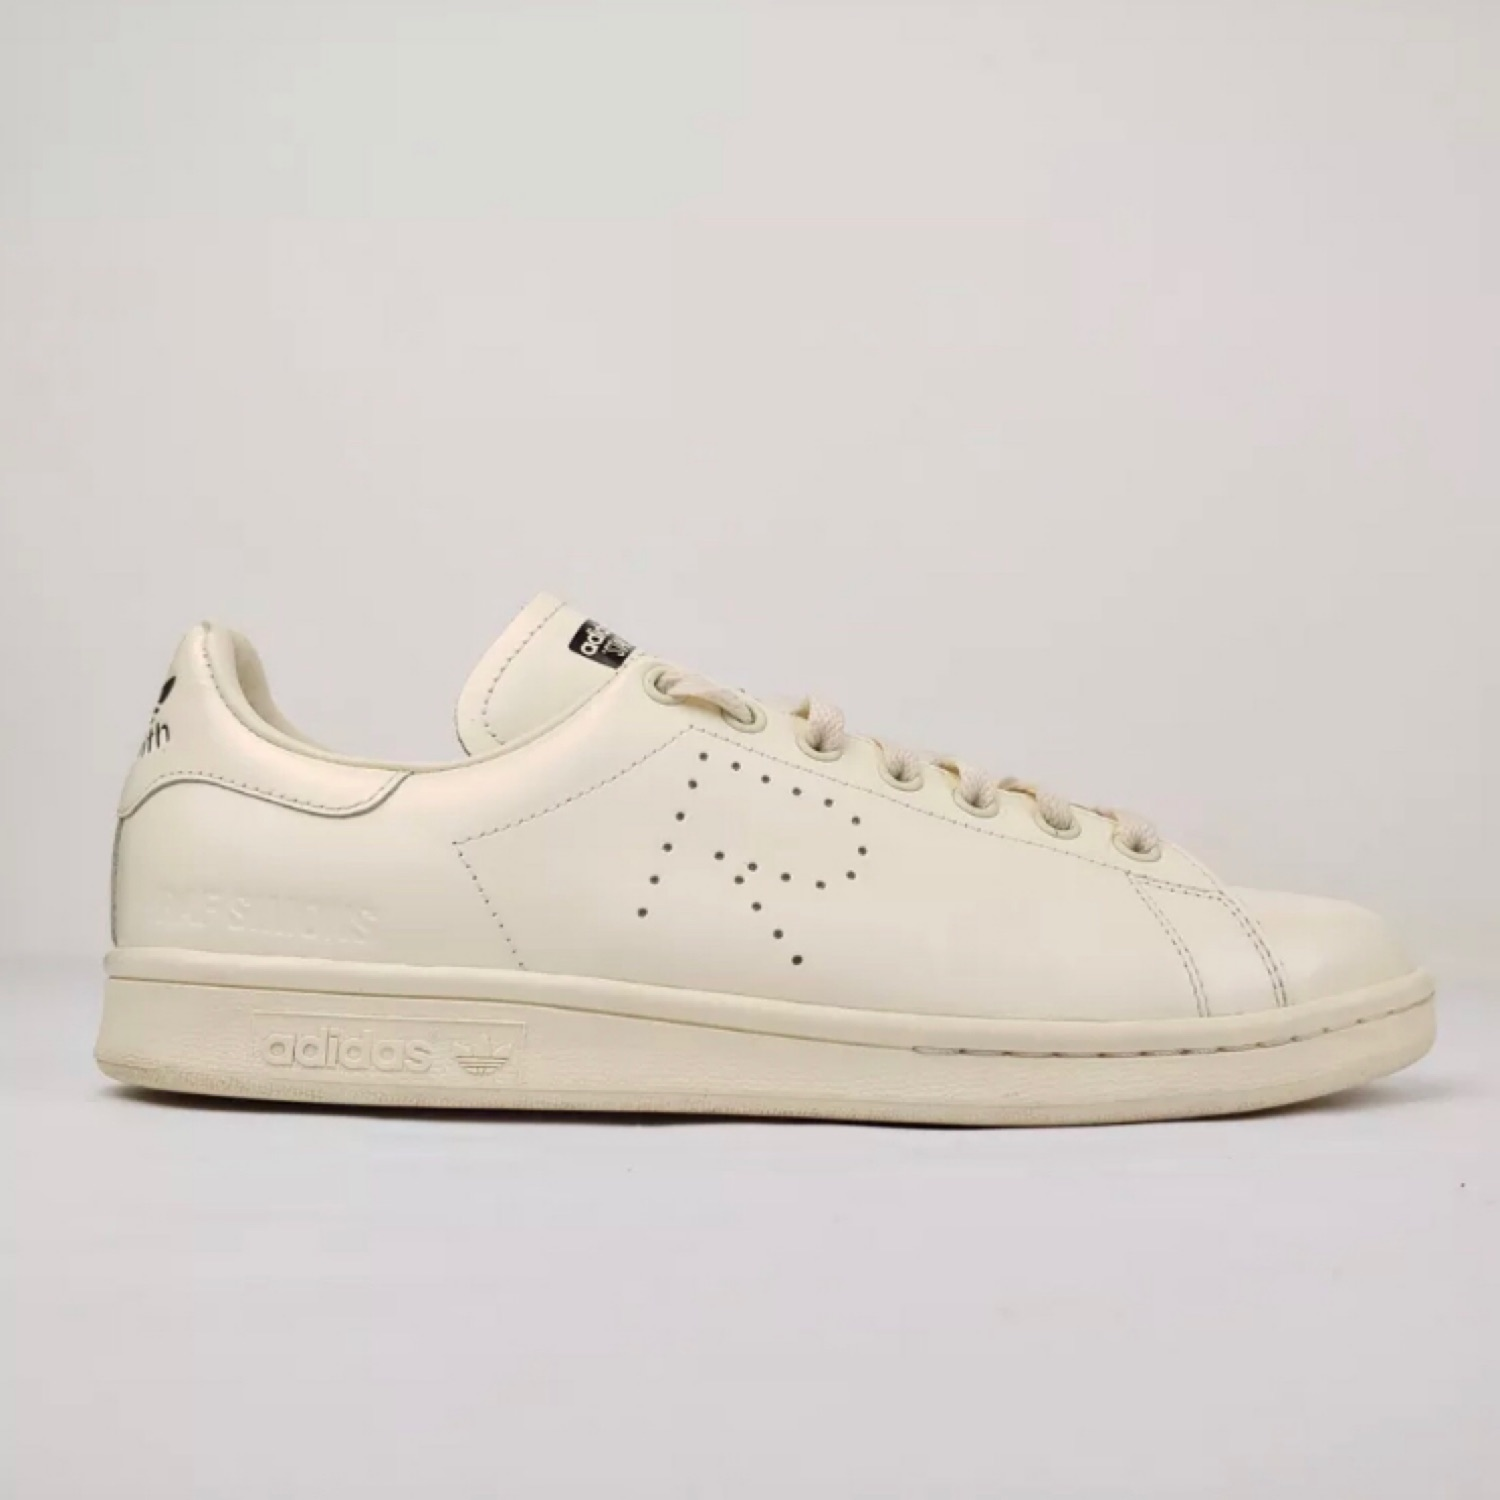 cc8830159 Raf Simons Adidas Stan Smith